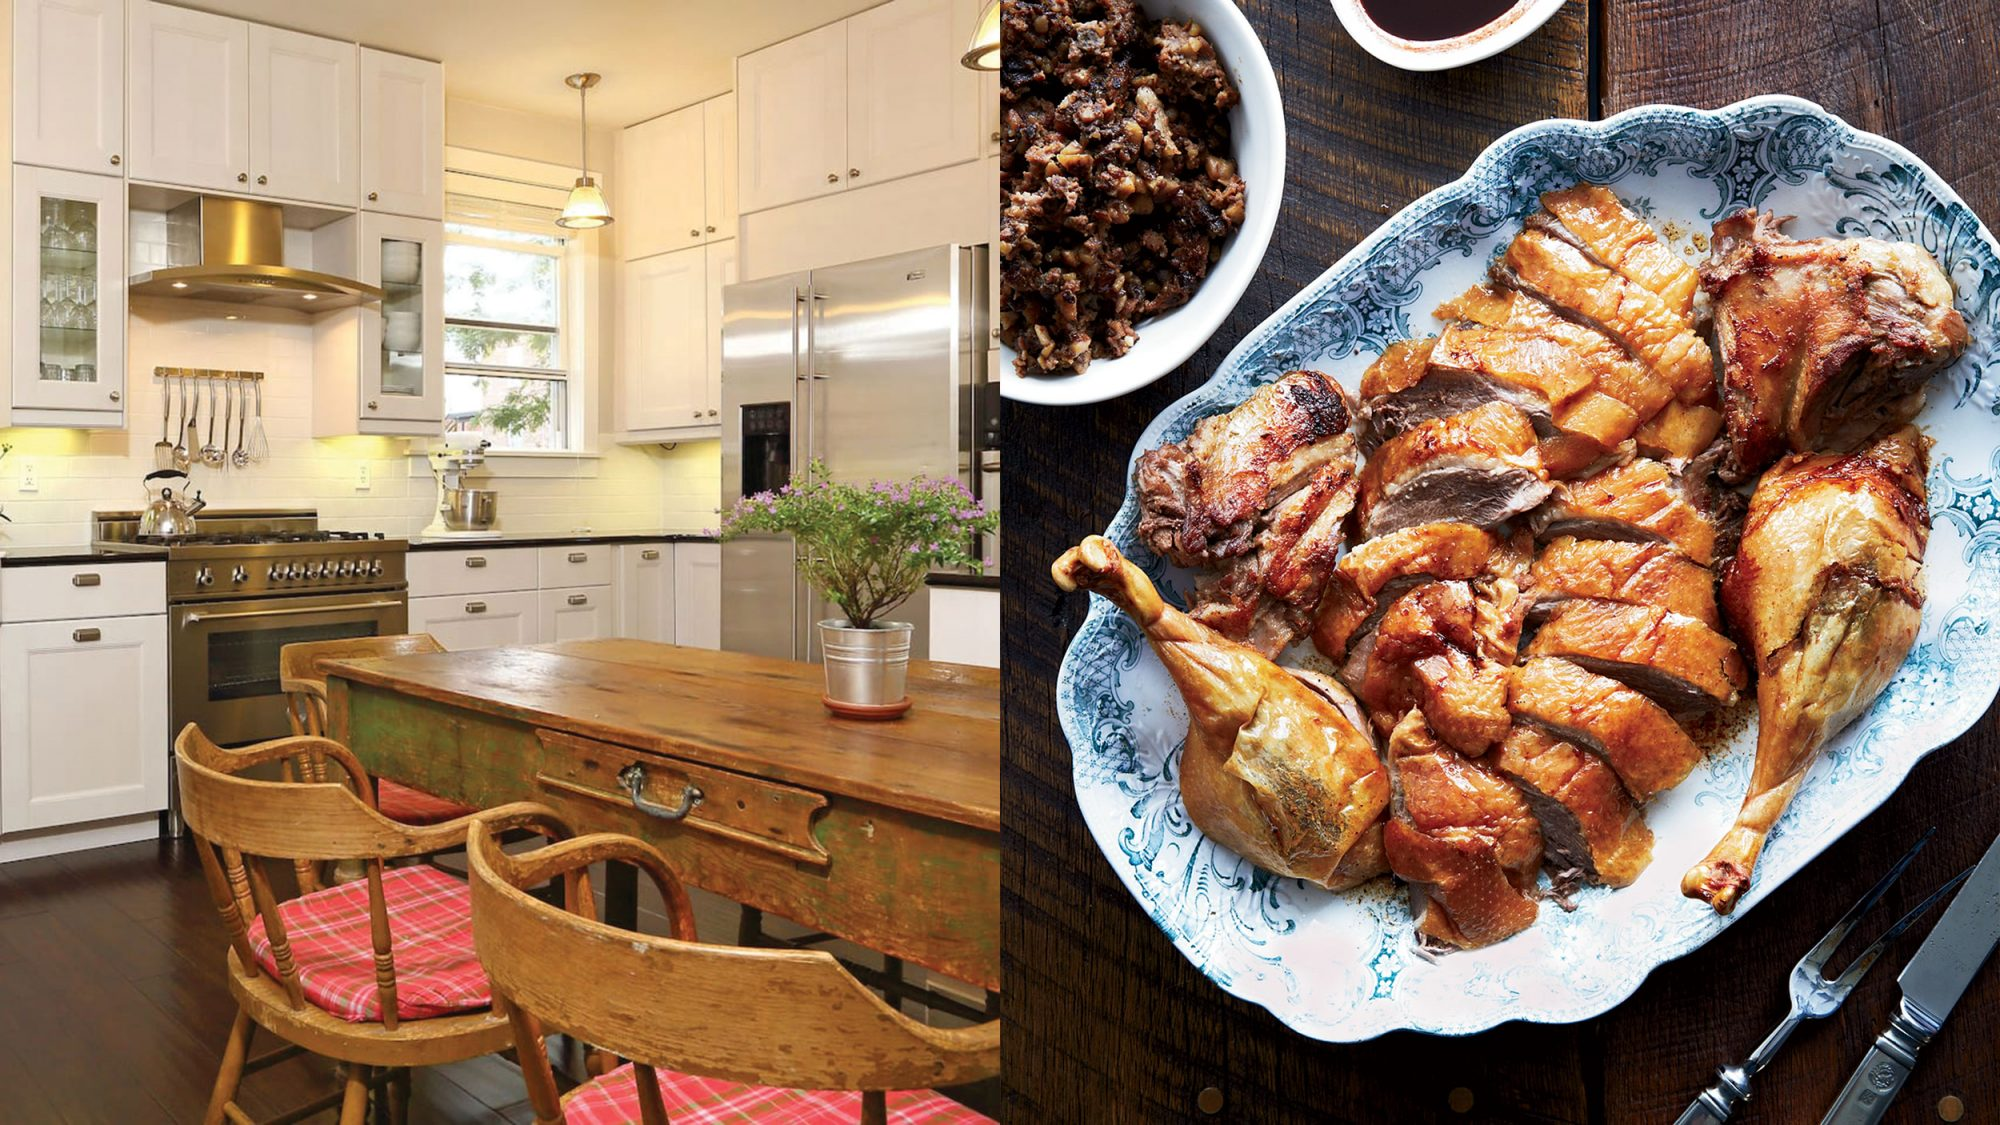 williamsburg-roast-goose-pork-prune-and-chestnut-stuffing-FT-AIRBNB1116.jpg